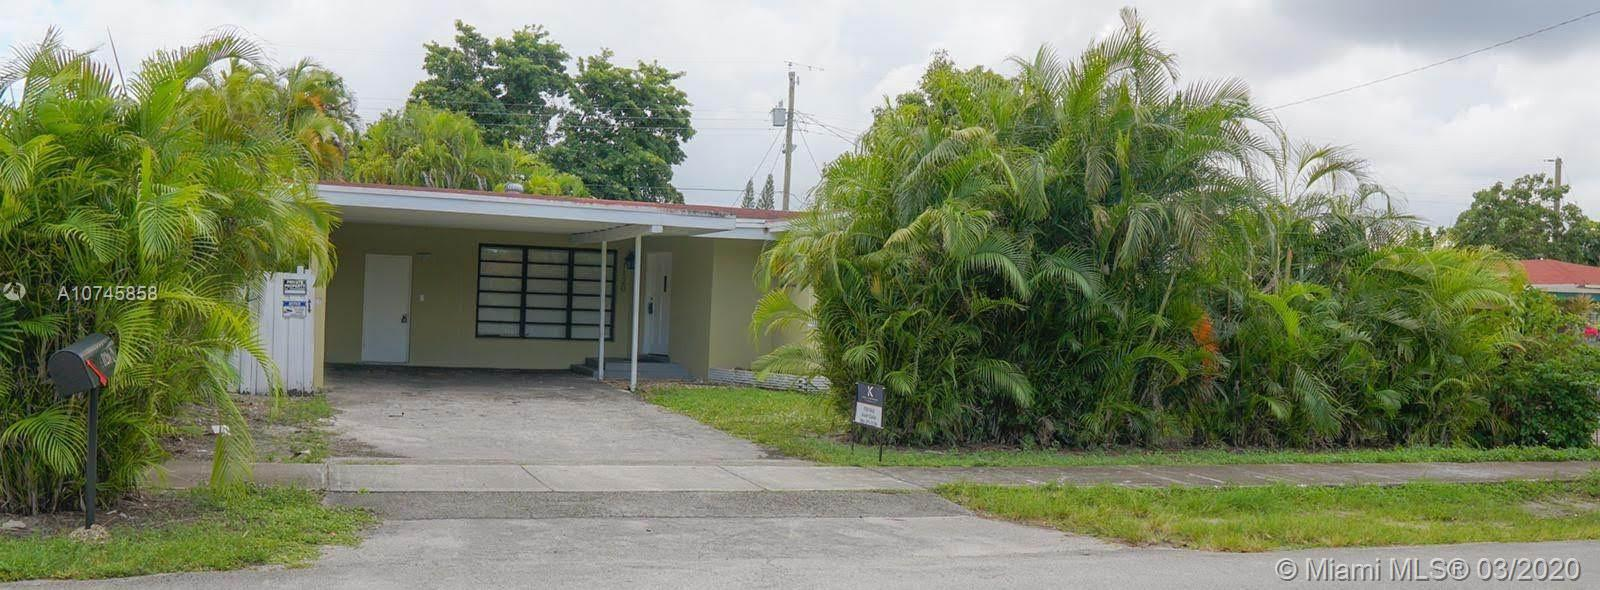 1120 NE 110th Ter  For Sale A10745858, FL